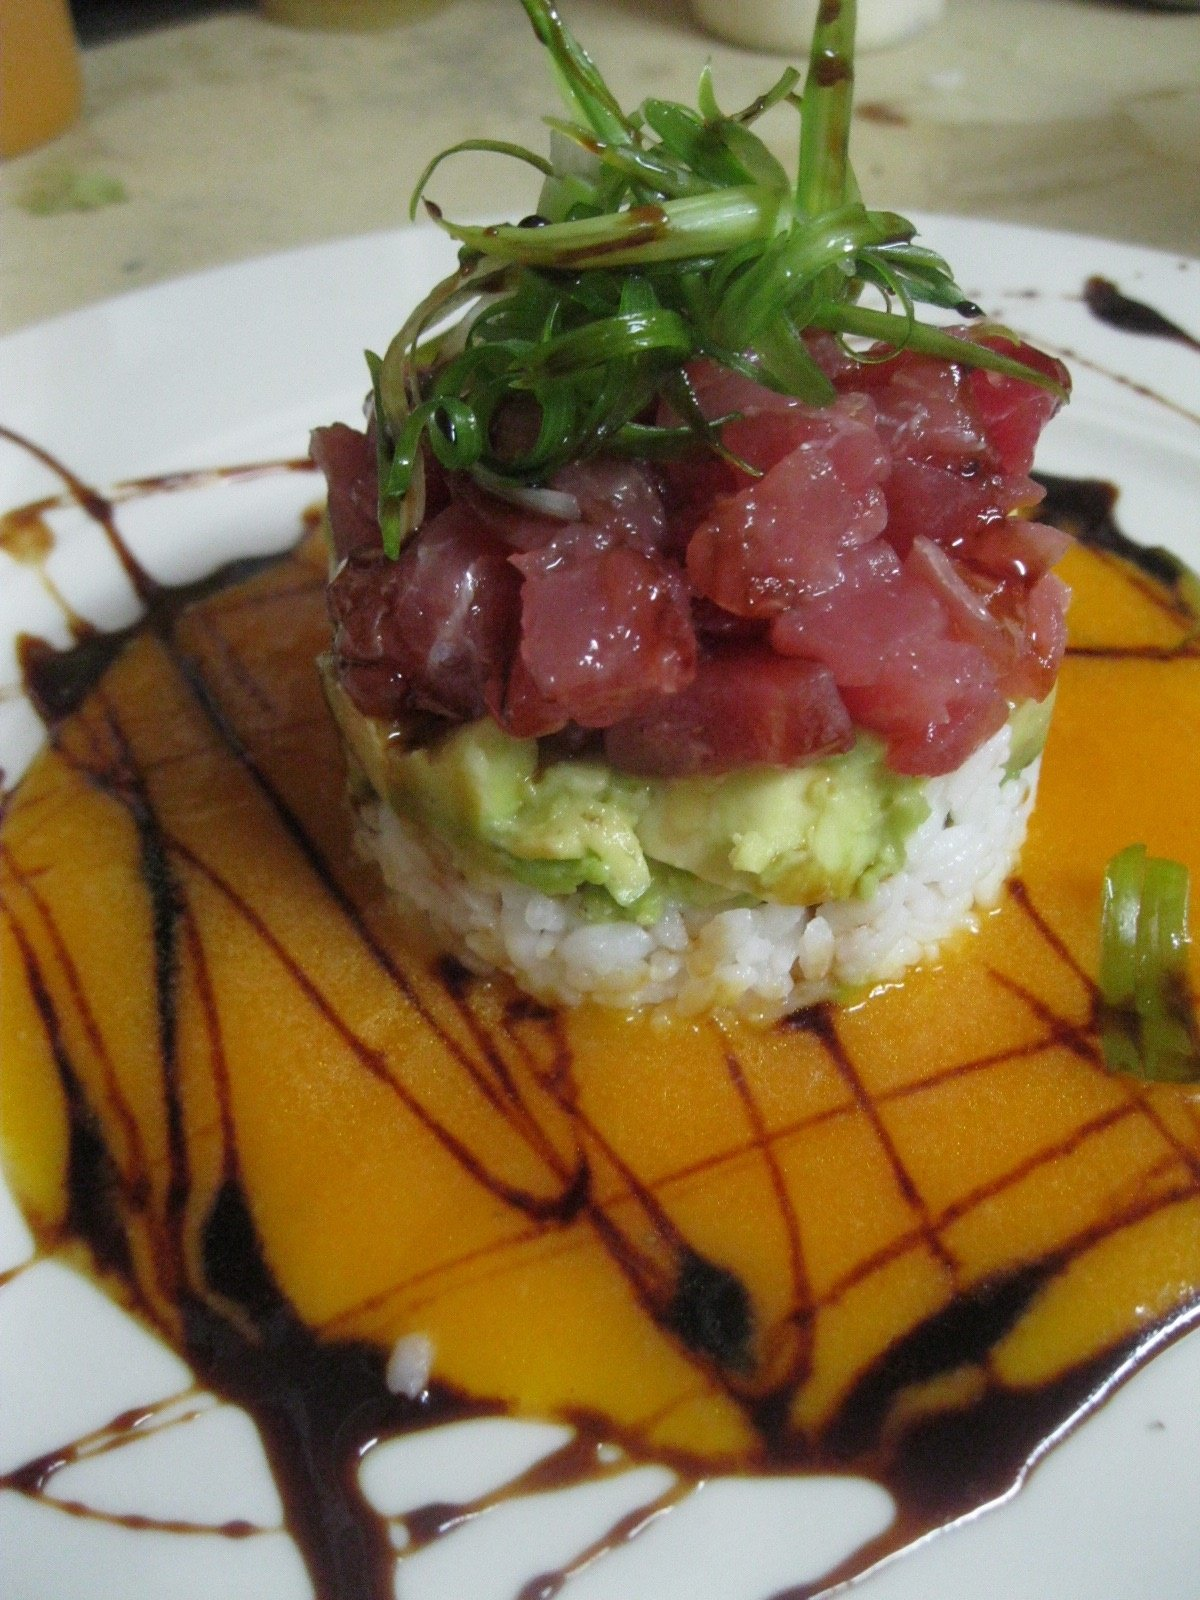 yellowfin tuna poke, avocado and sushi rice tower with a gingered carrot coulis